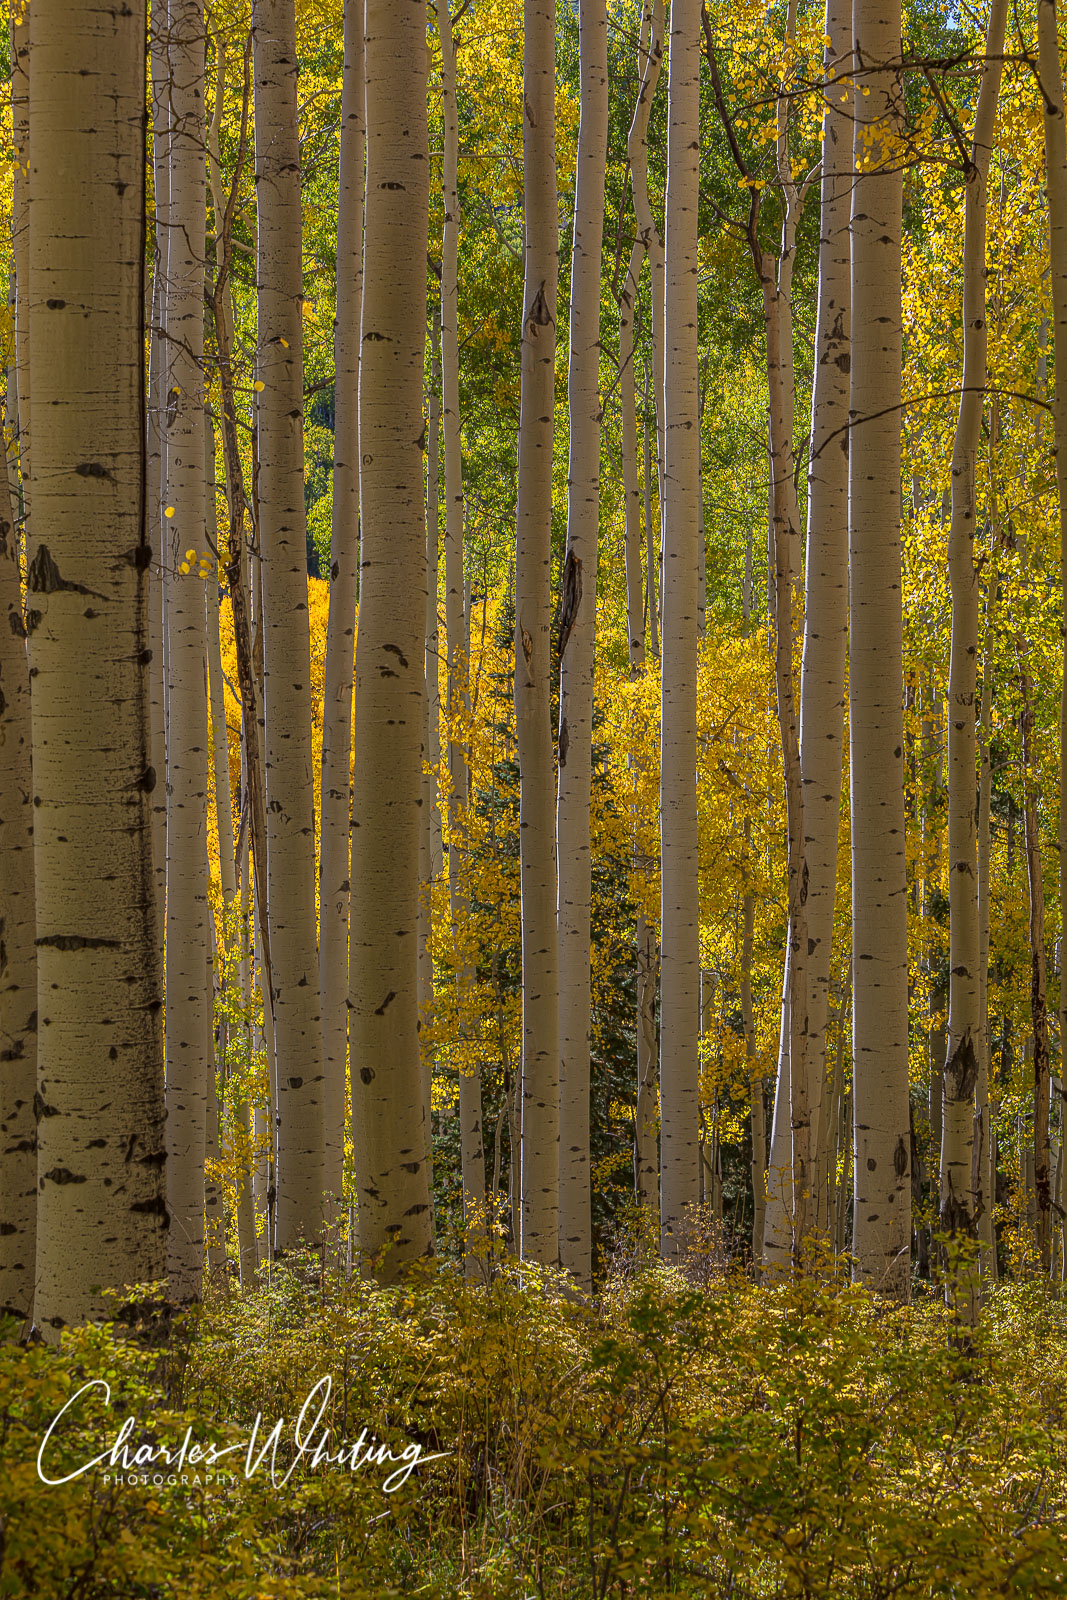 Aspen, Aspen boles, Colorado, photo